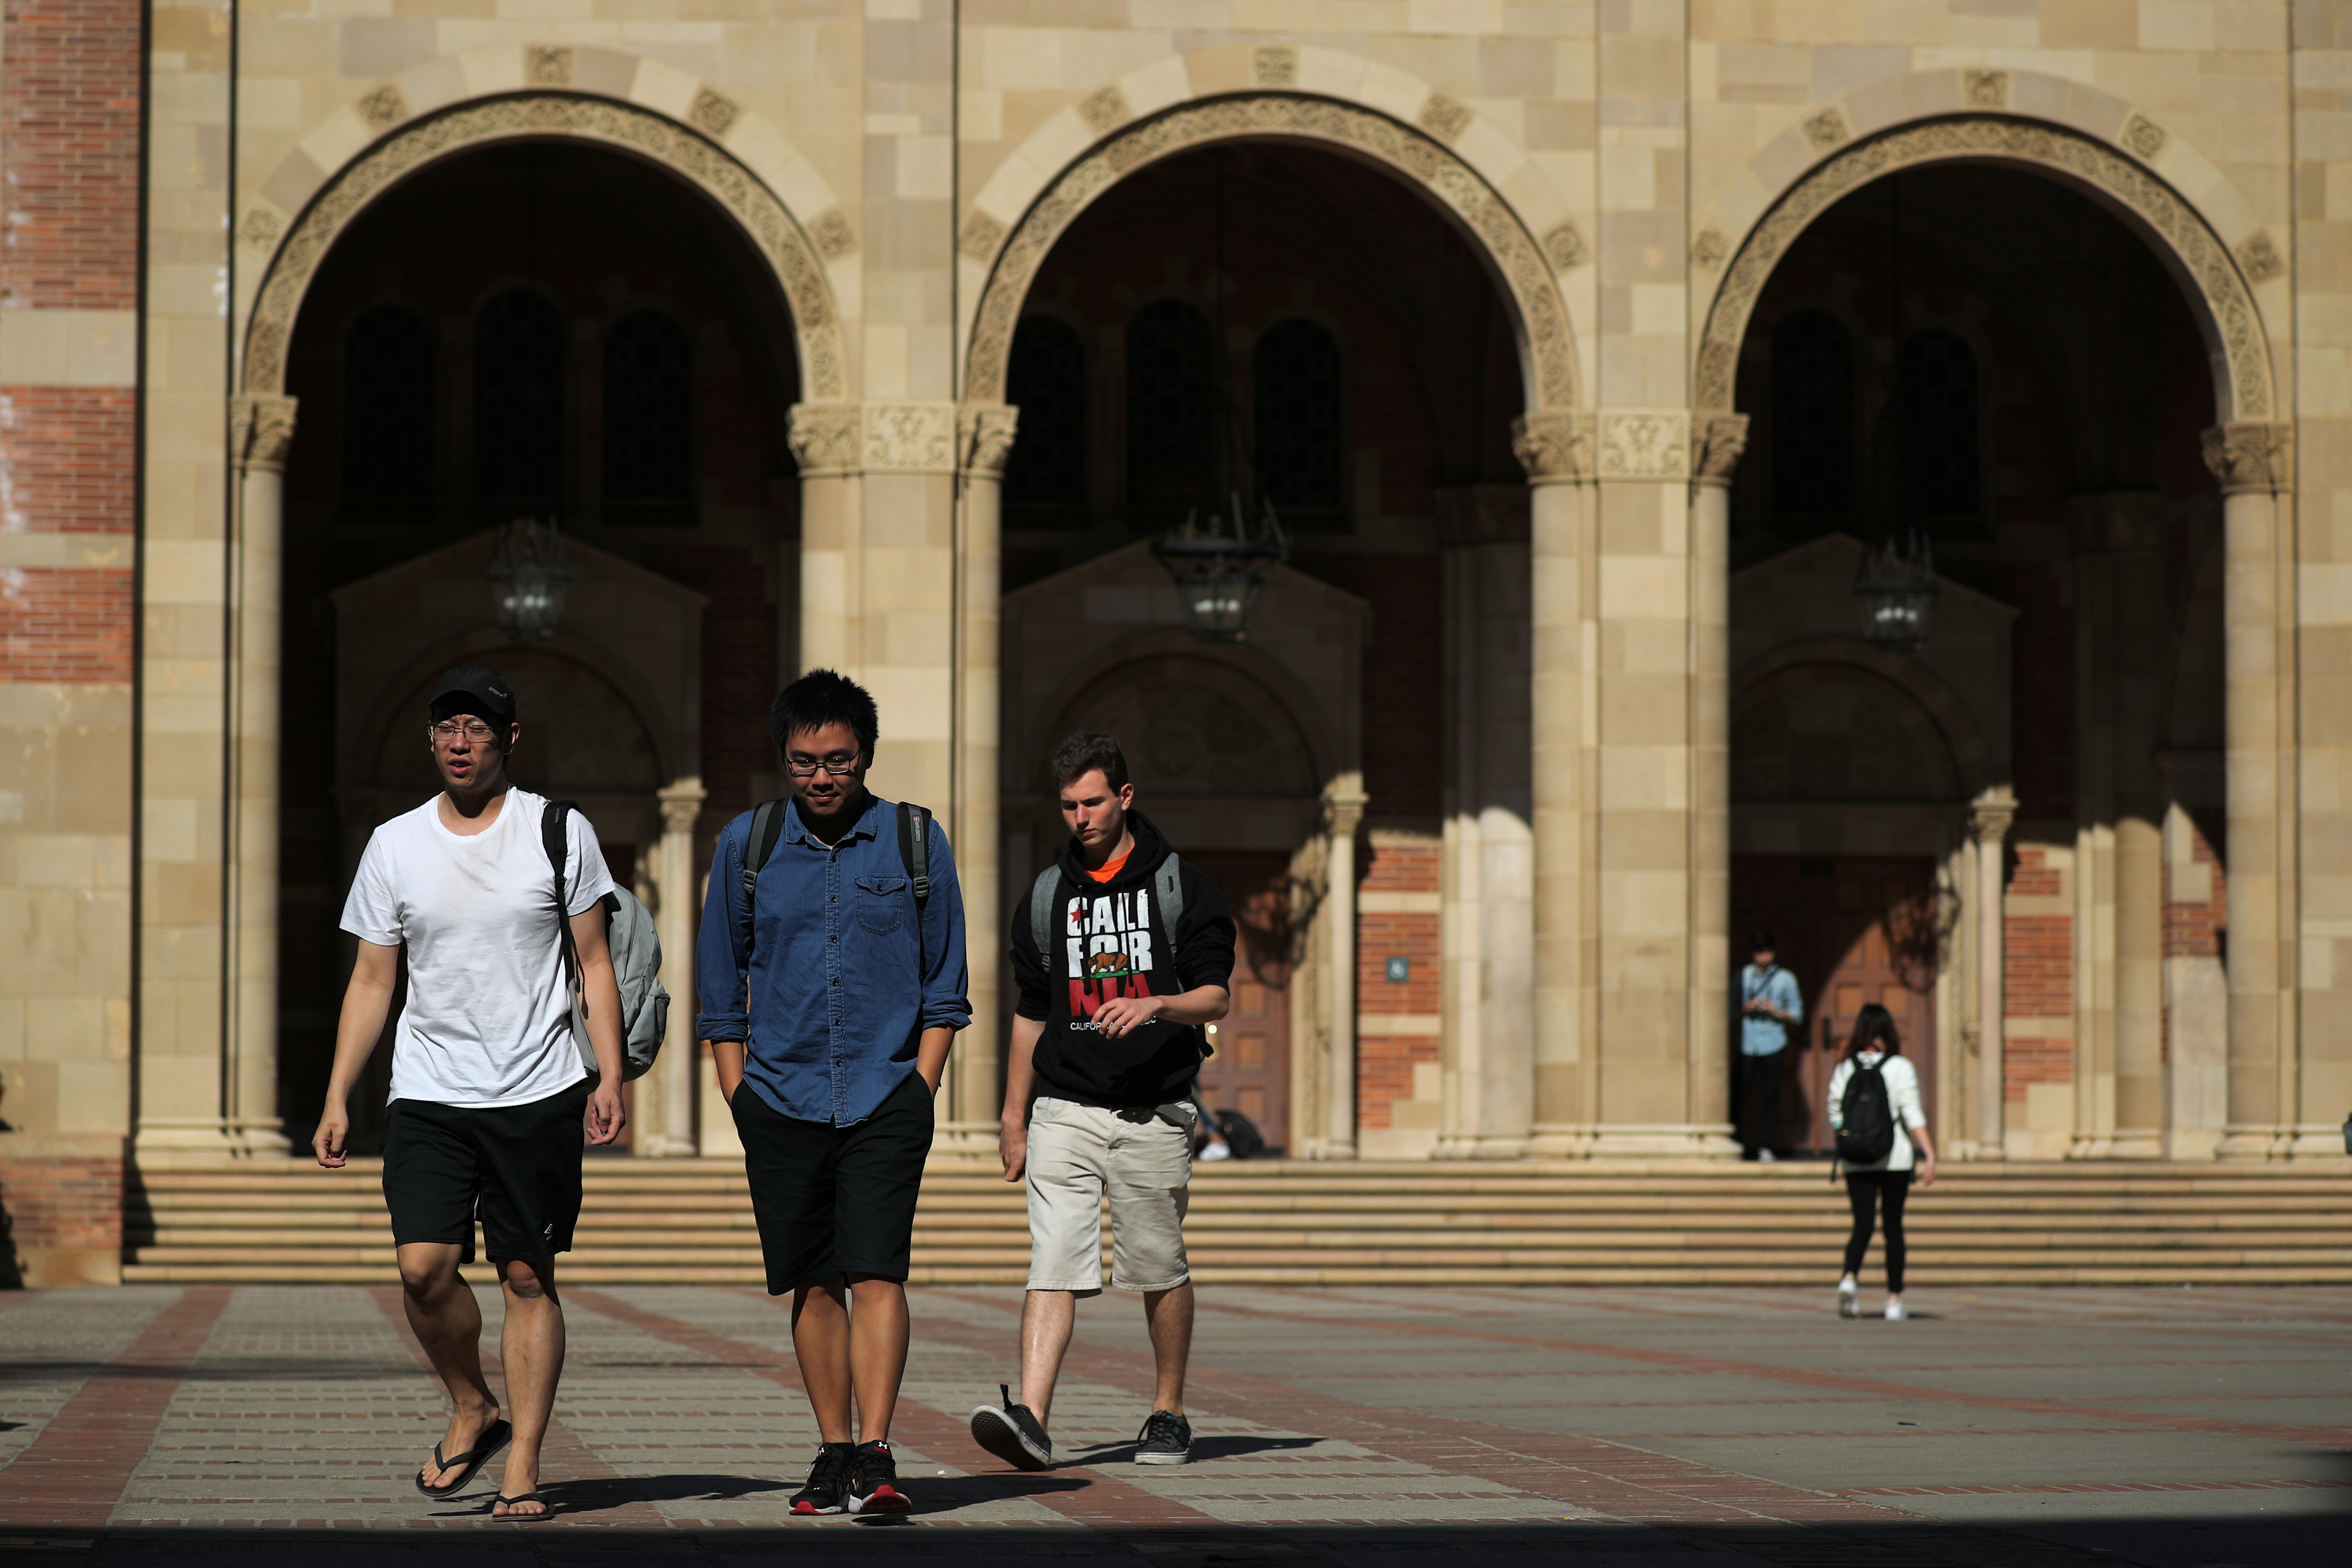 Students walking on the UCLA campus.